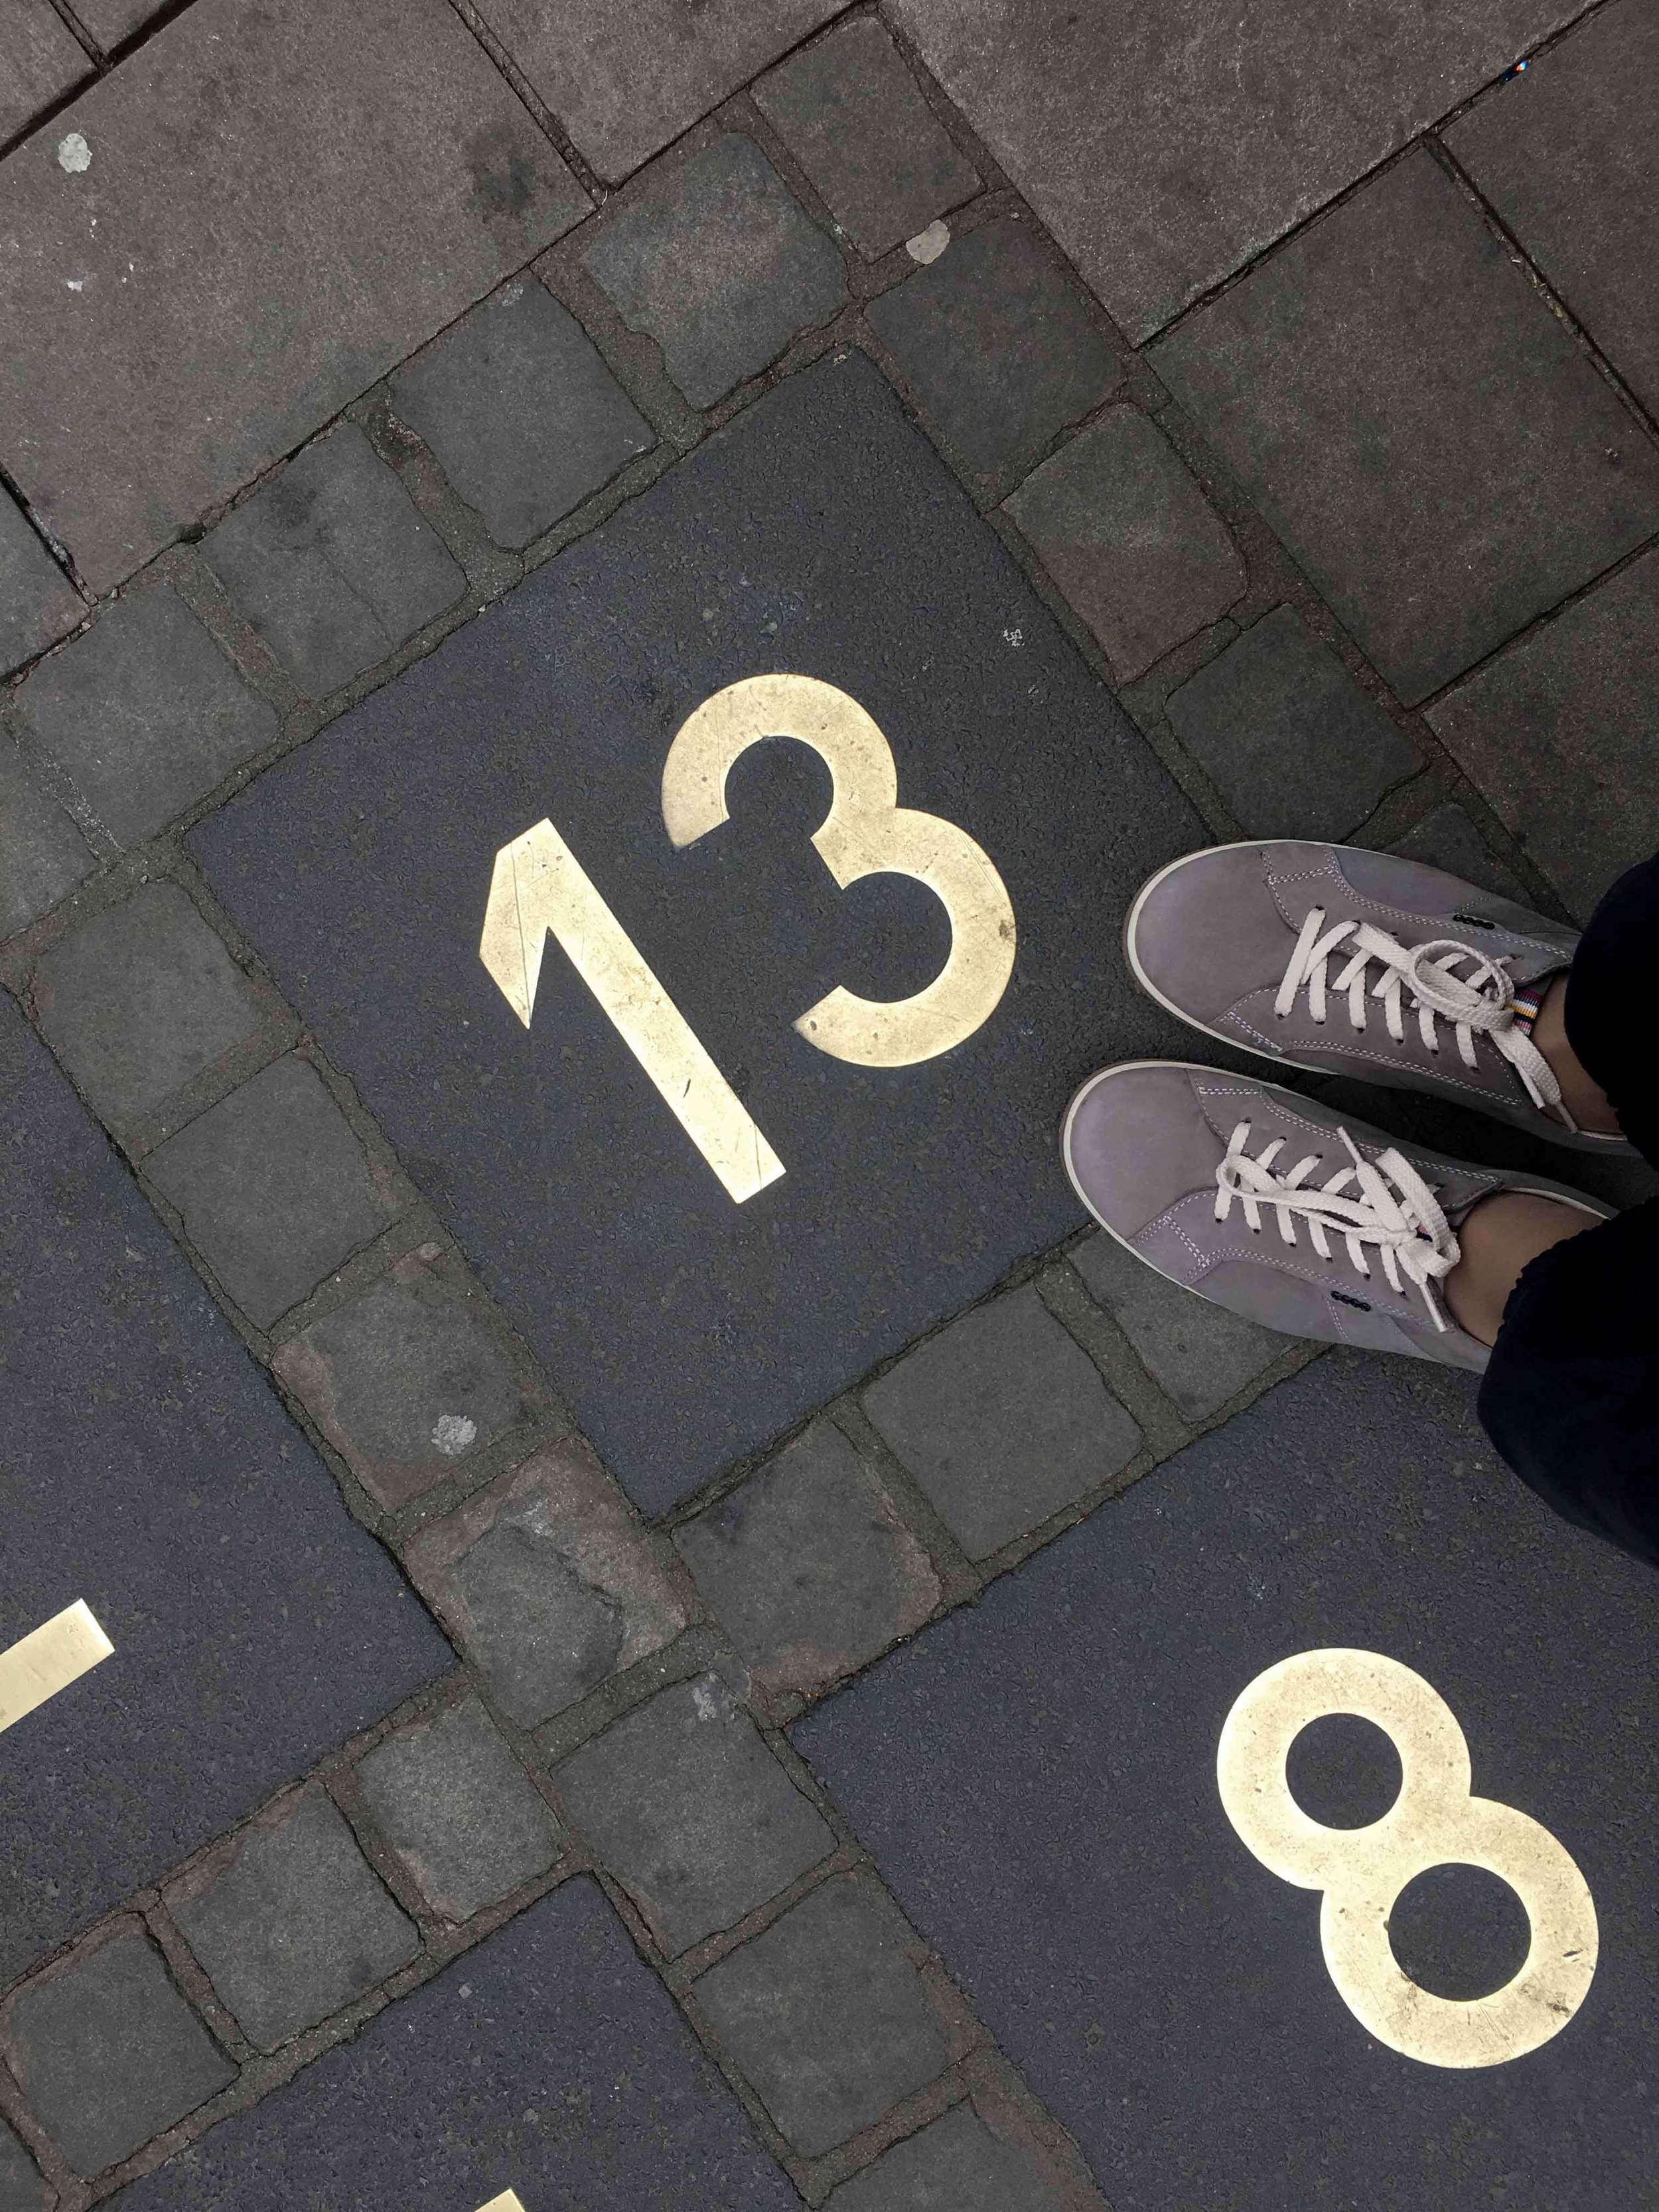 My lucky number is 13, what's yours? Number games on the road, Ratingen, Germany. Image©sourcingstyle.com